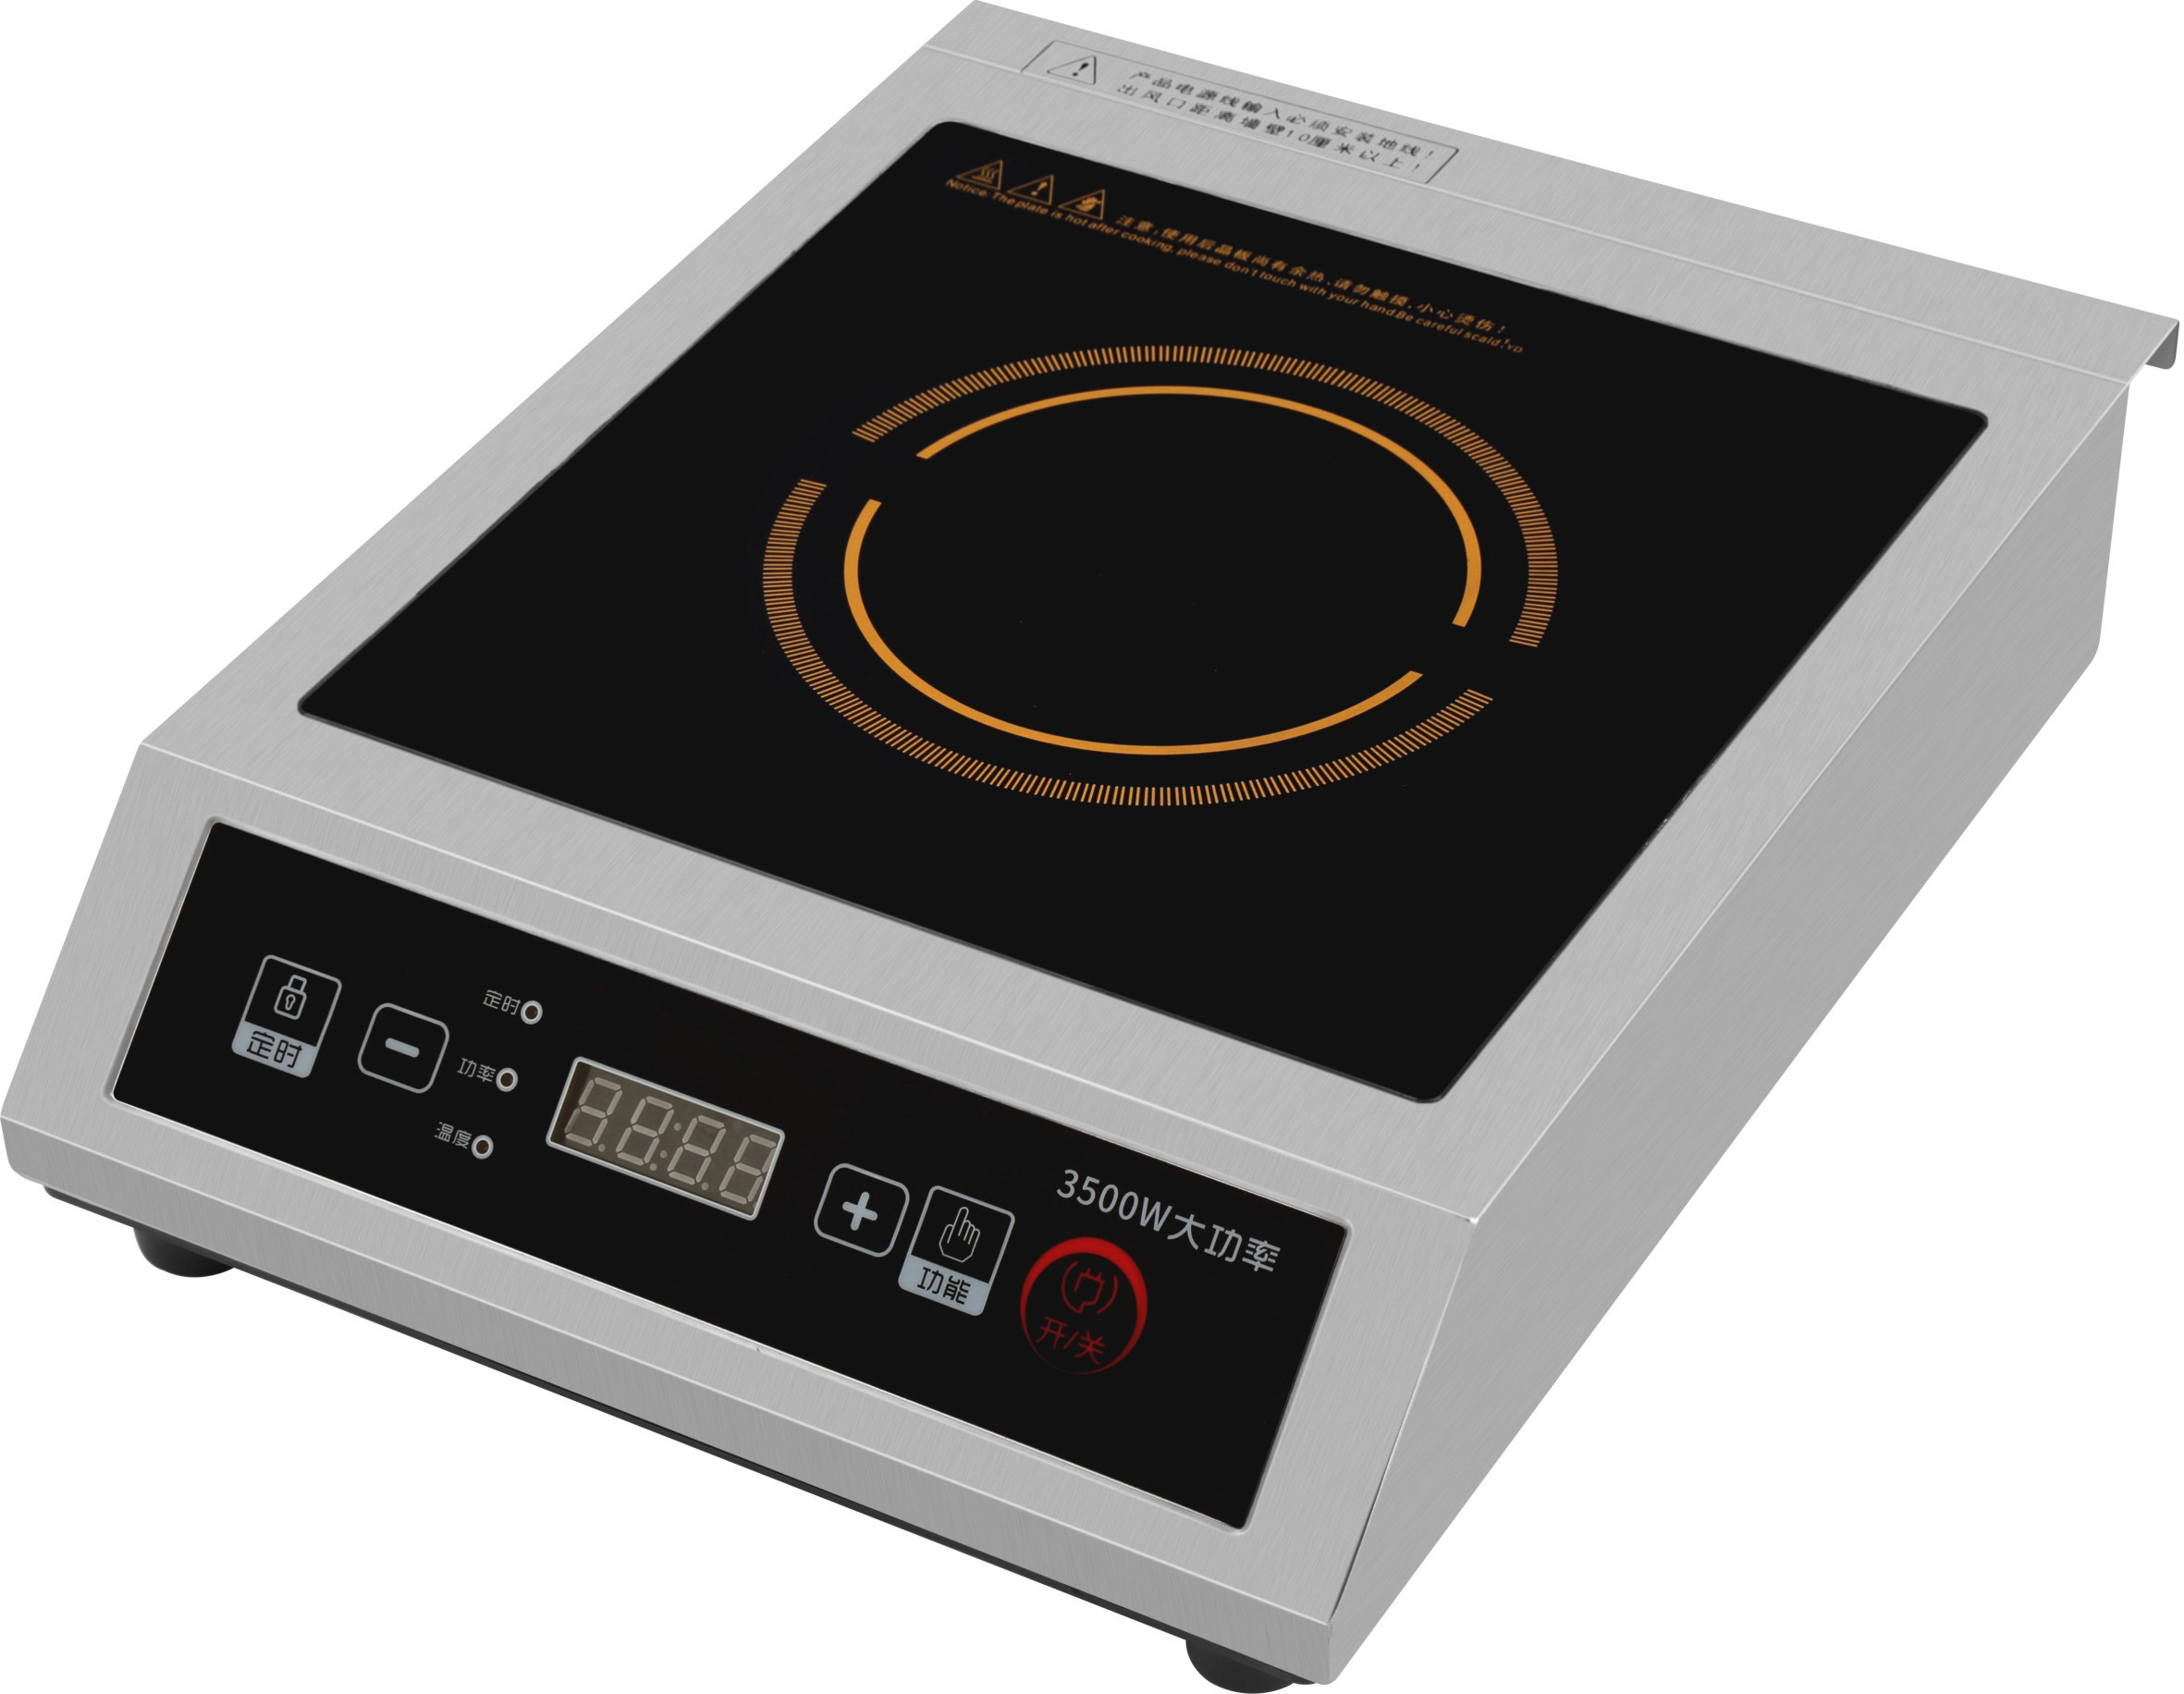 3500W high quality and energy saving induction cooker